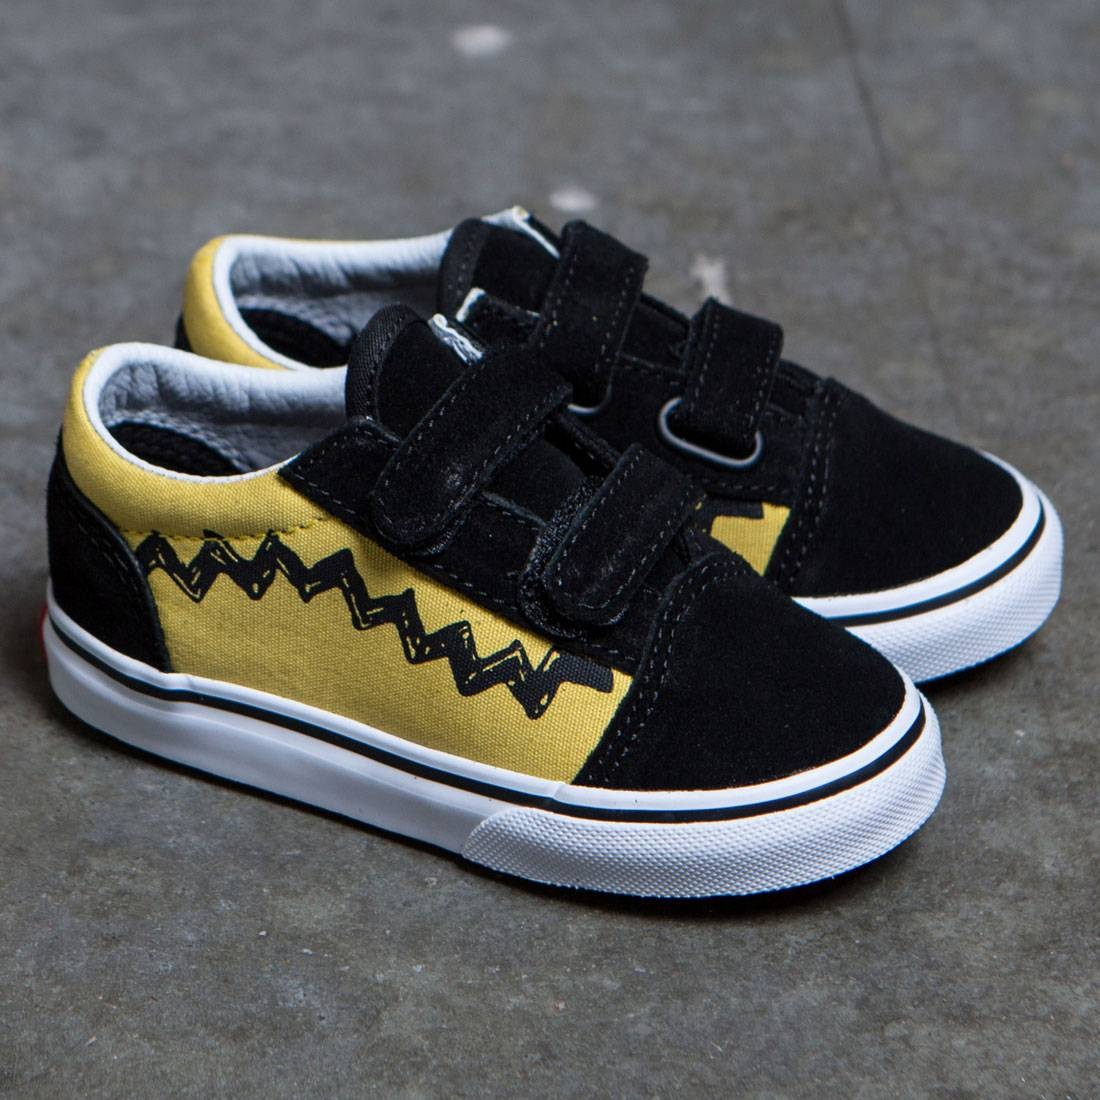 03aed283f4f Vans x Peanuts Toddlers Old Skool V - Charlie Brown (yellow   black)